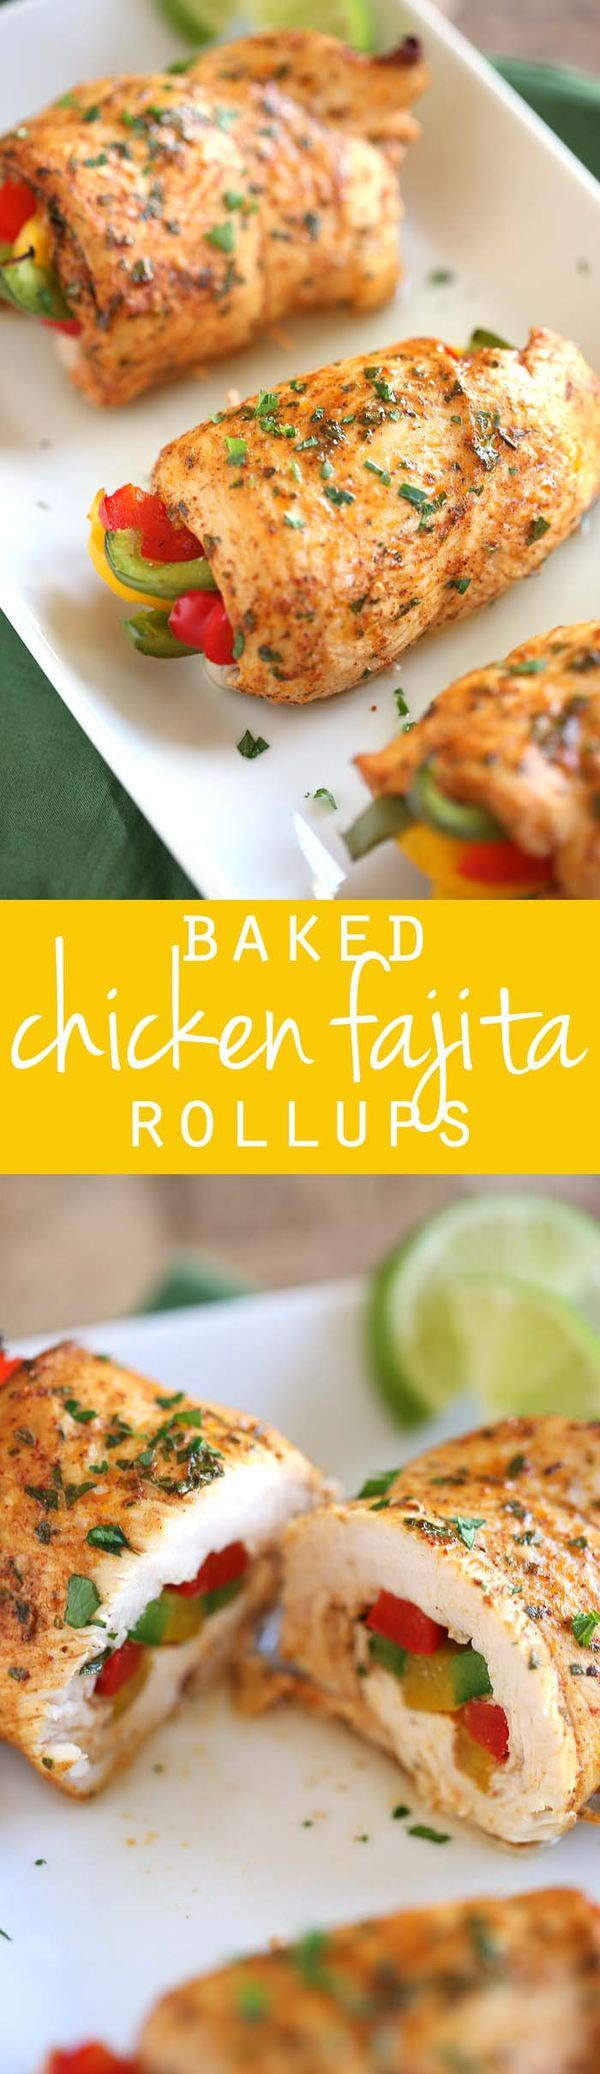 These Baked Chicken Fajita Roll-Ups are easy to make, super moist and make the perfect delicious low-carb meal!  eat-yourself-skinny.com